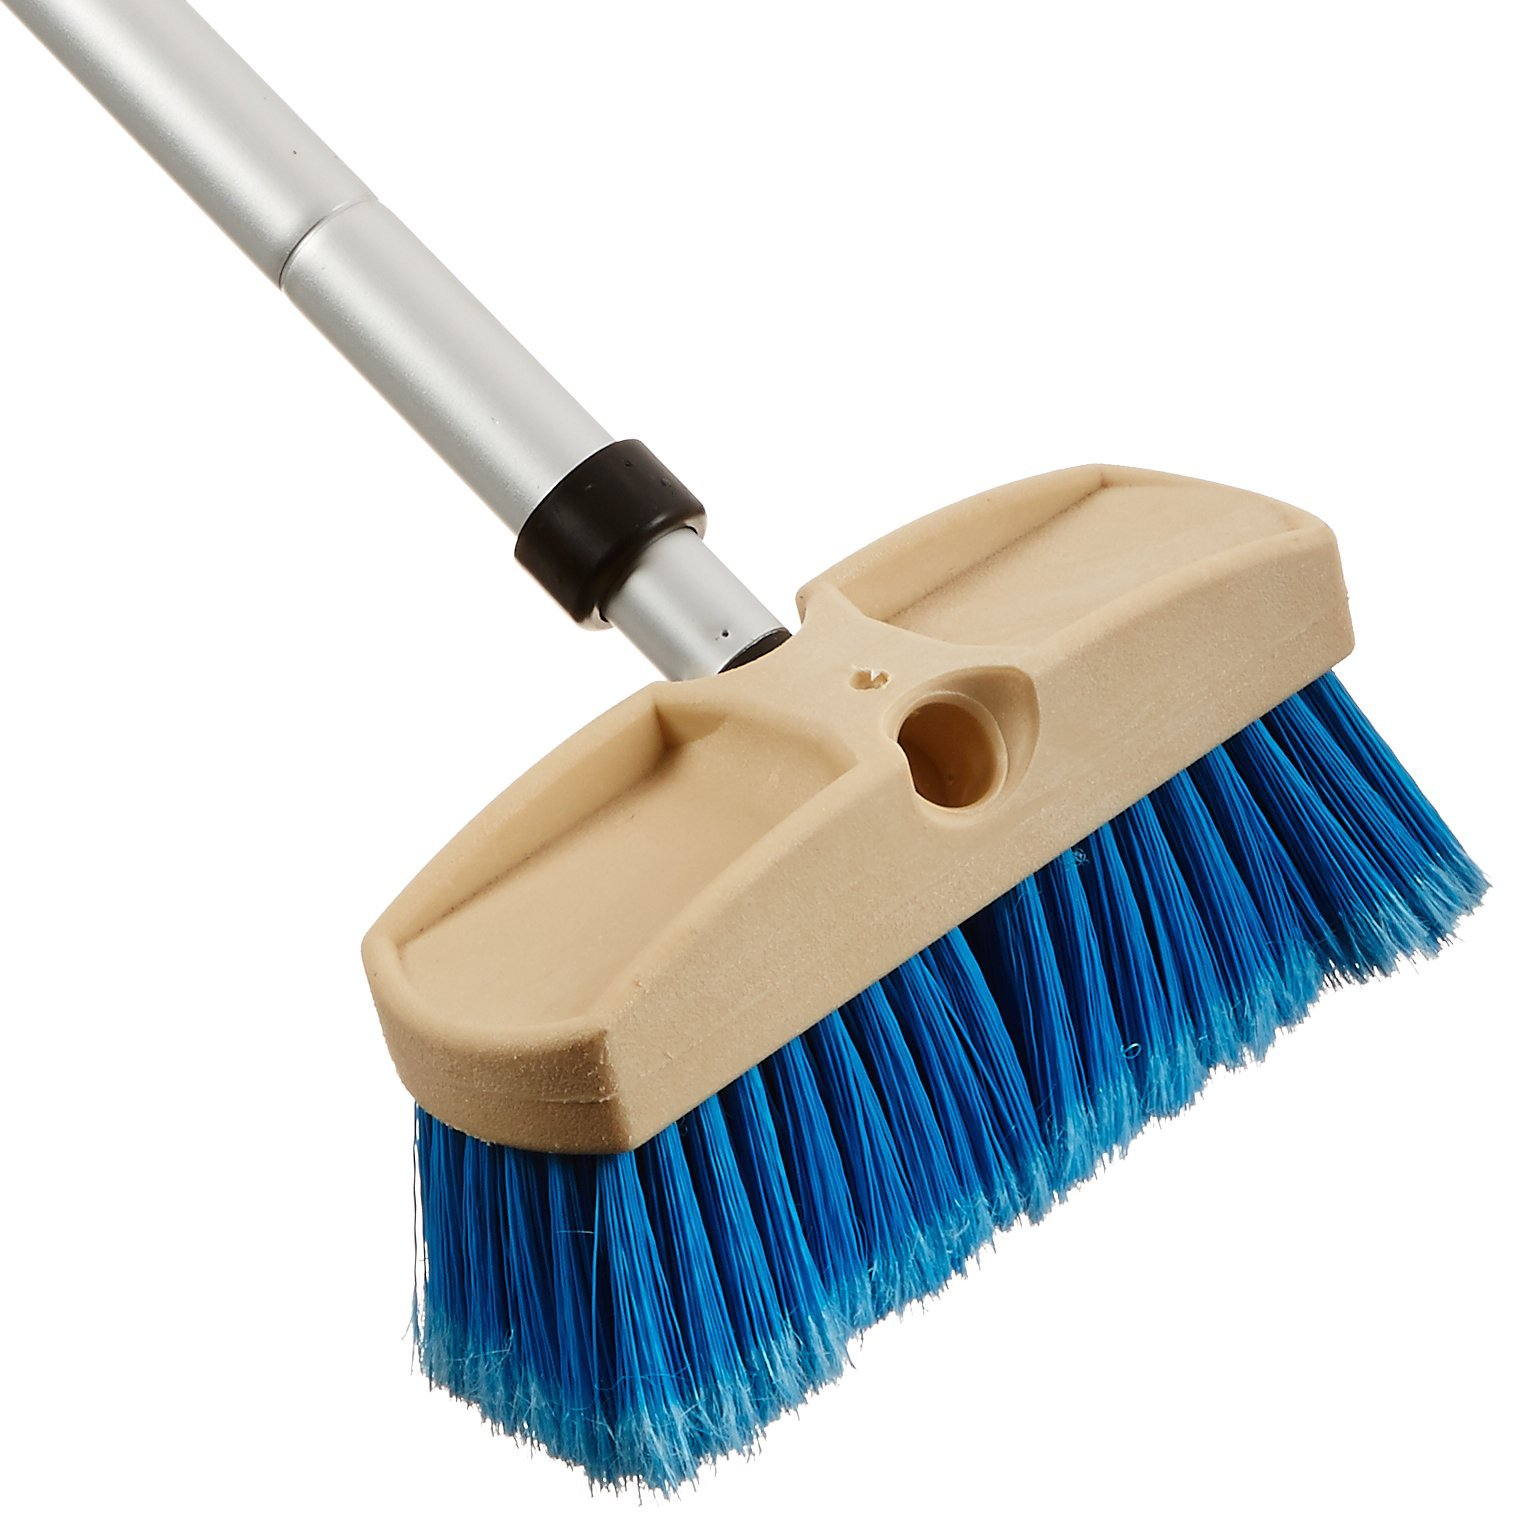 Star brite Brush & Compact Handle Combo - Extends 2'-4' - Made in USA by Star Brite (Image #2)